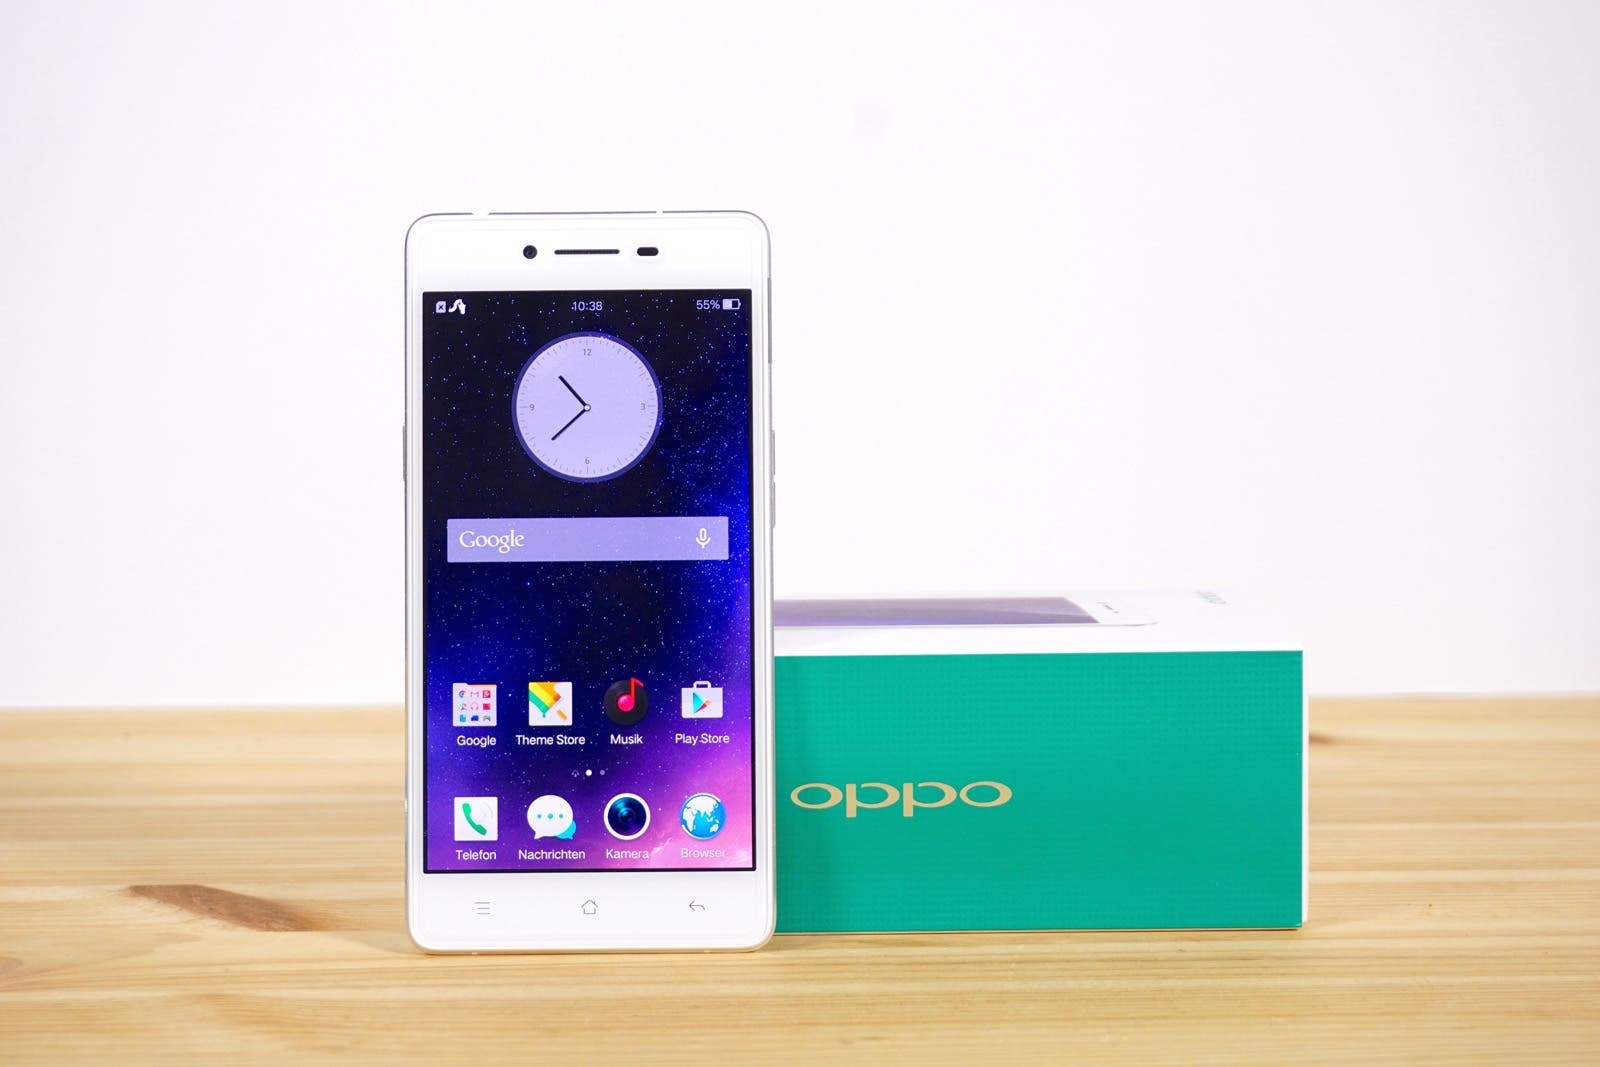 Oppo R7 Unboxing